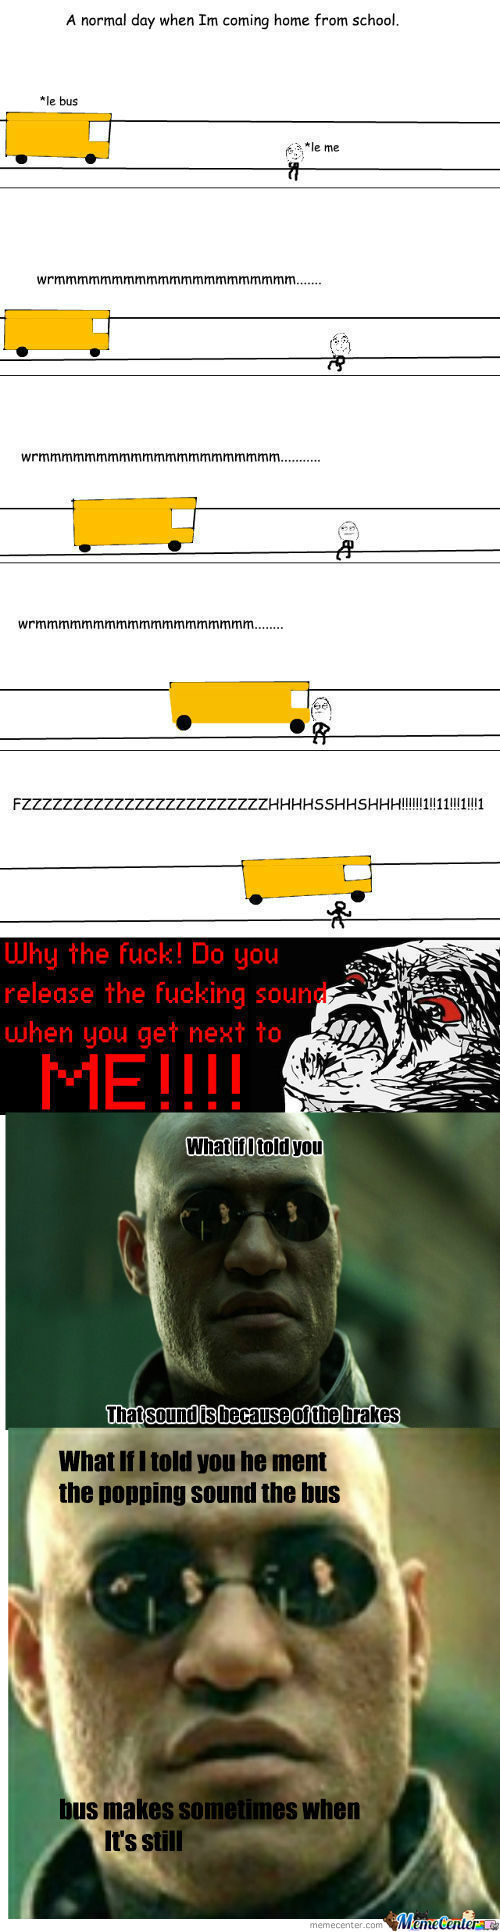 [RMX] [RMX] Every F*king Time There's A Bus!